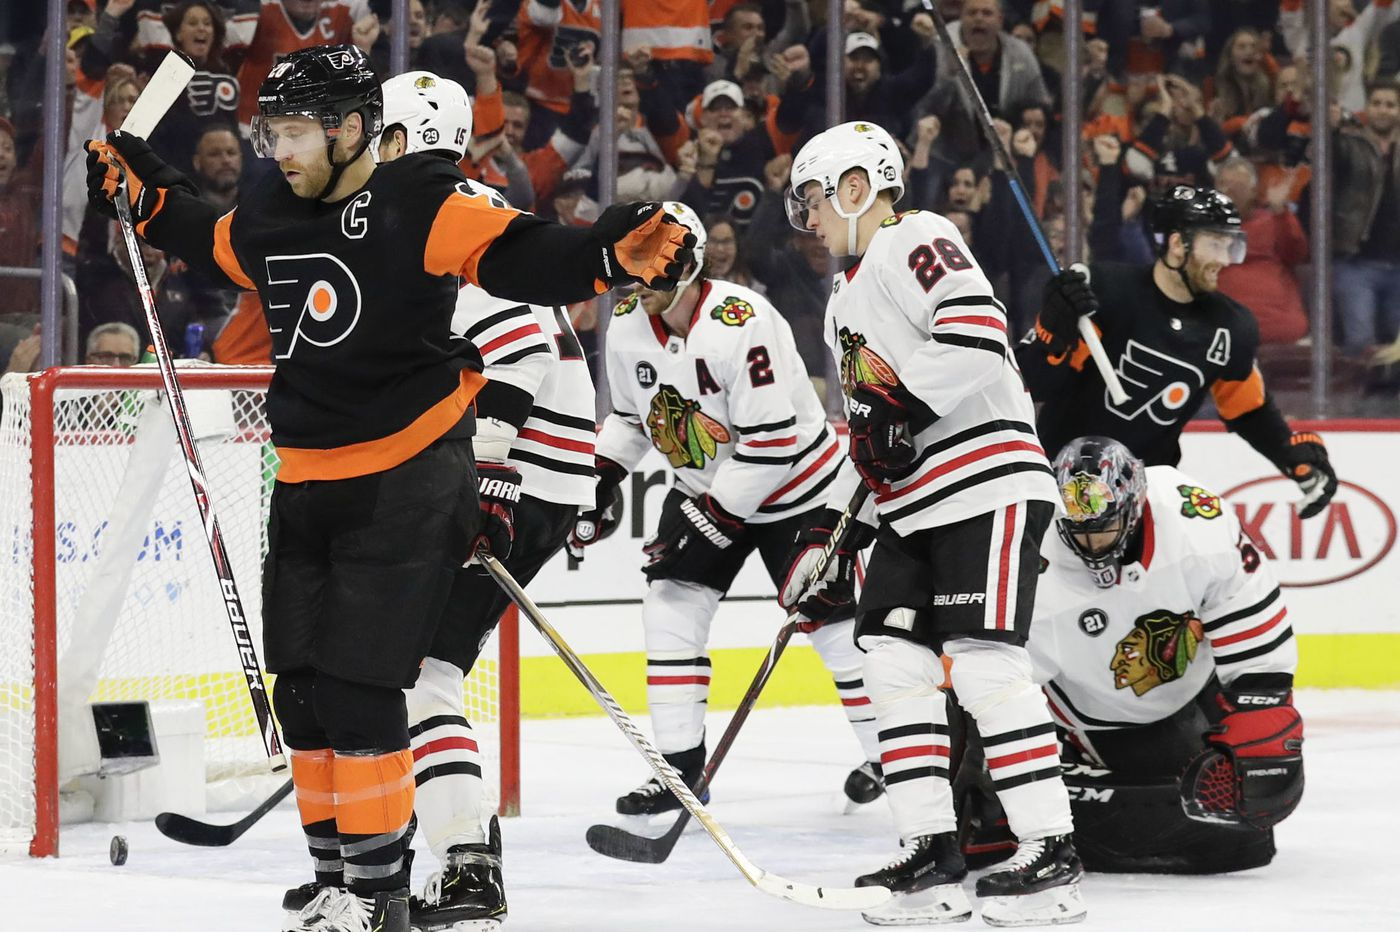 Flyers' Claude Giroux honored by NHL after sizzling week